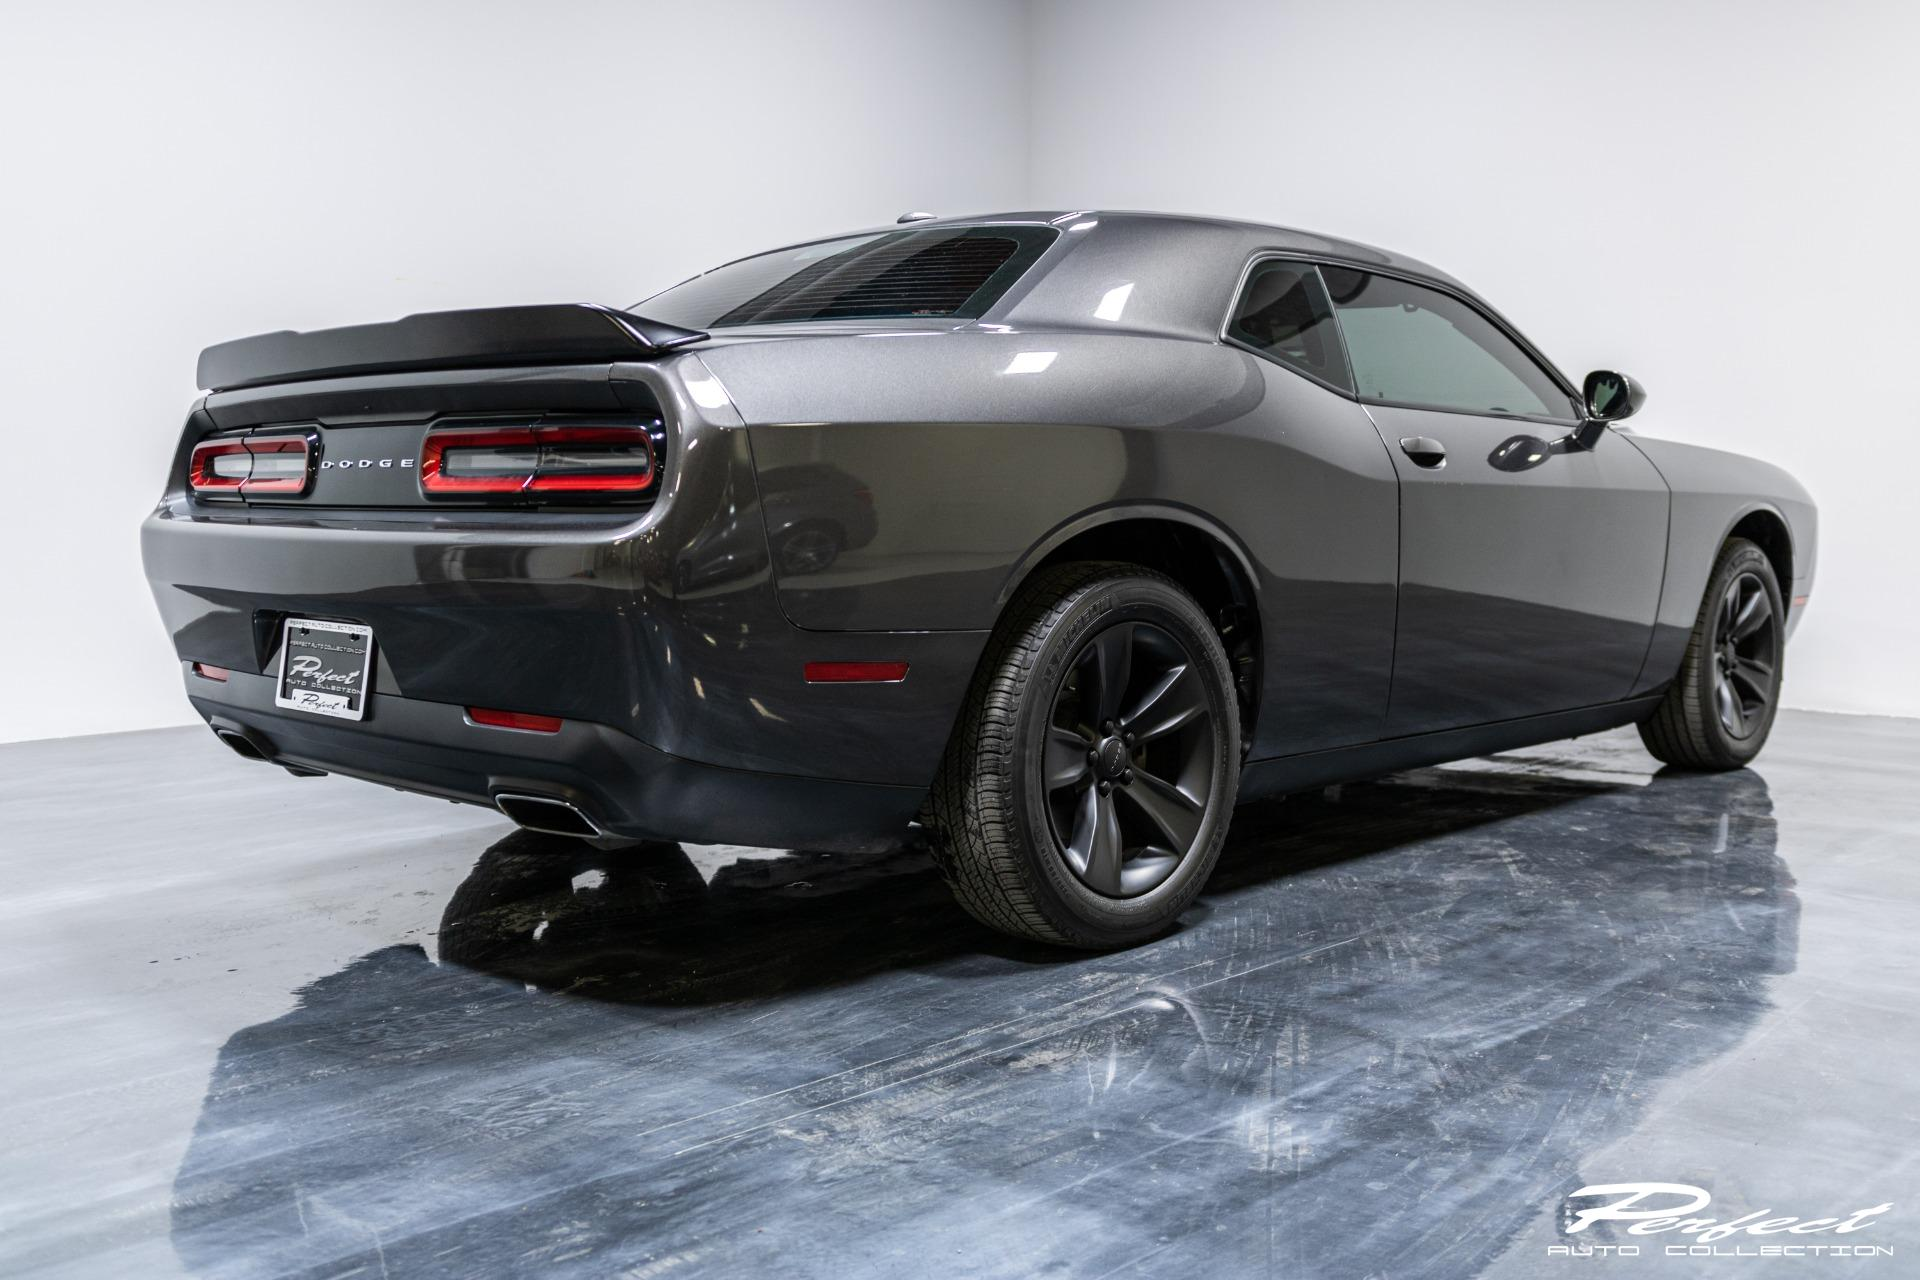 Used 2016 Dodge Challenger SXT for sale Sold at Perfect Auto Collection in Akron OH 44310 4